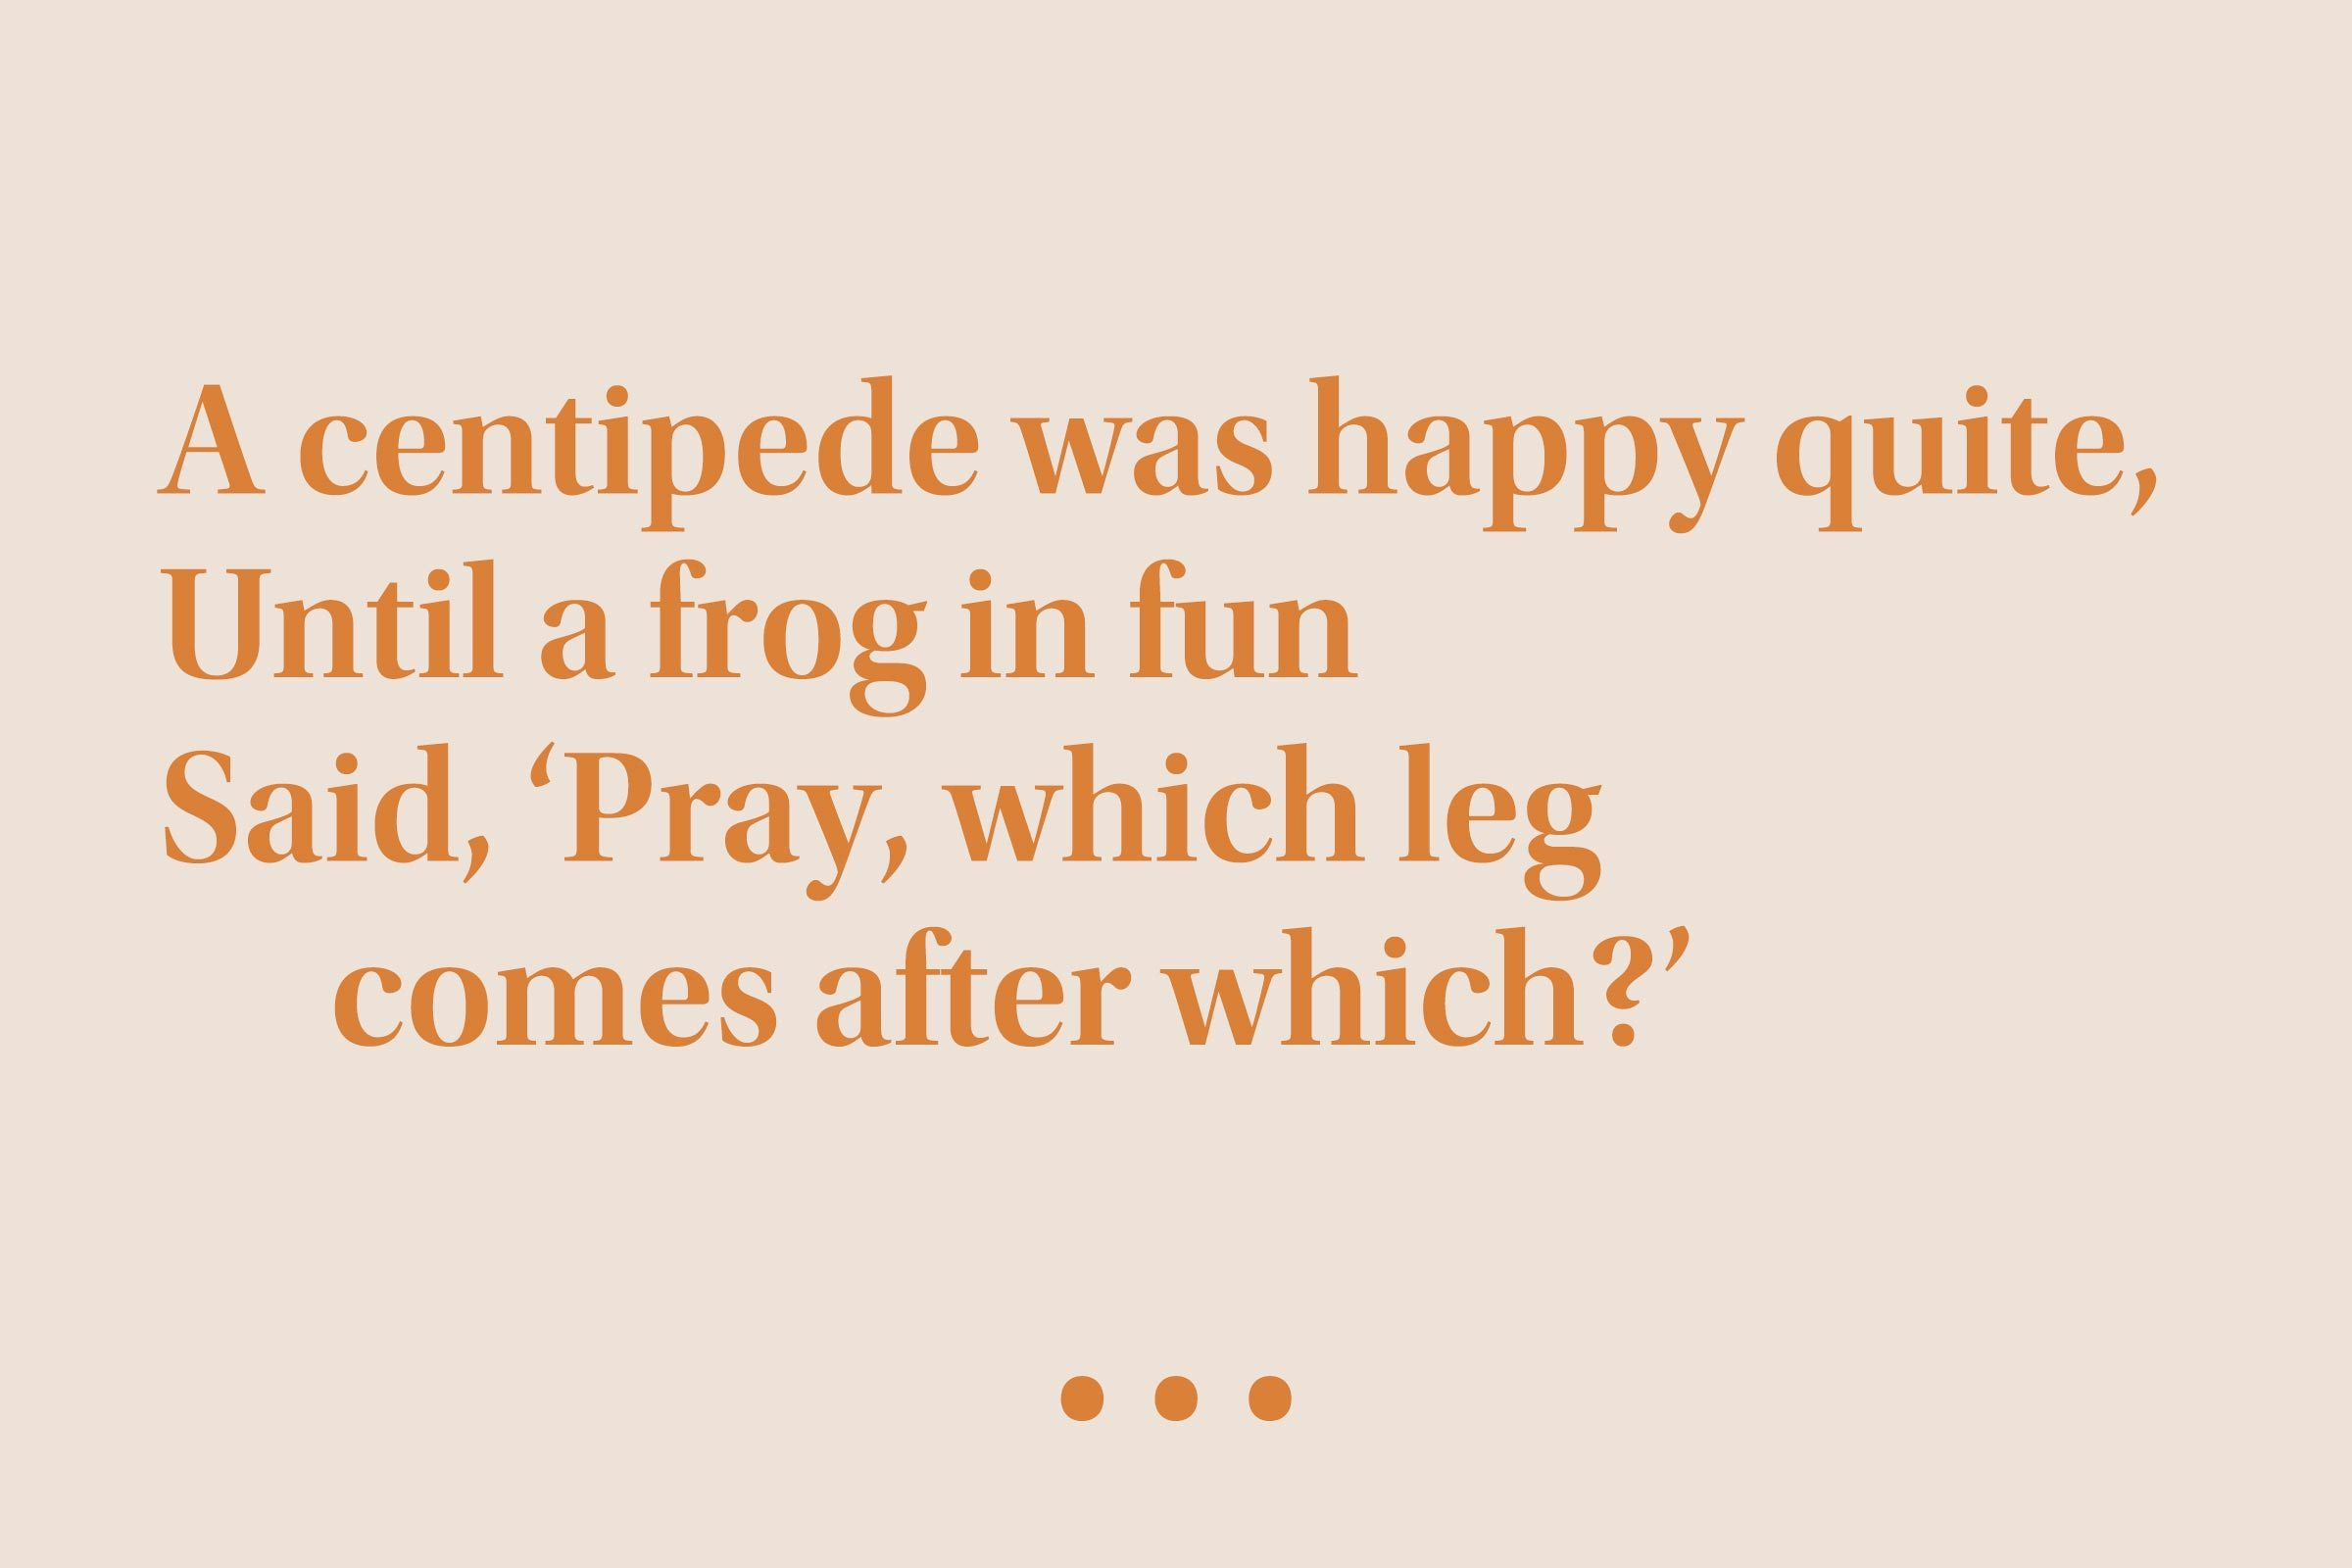 """""""A centipede was happy quite, Until a frog in fun Said, 'Pray, which leg comes after which?'"""""""